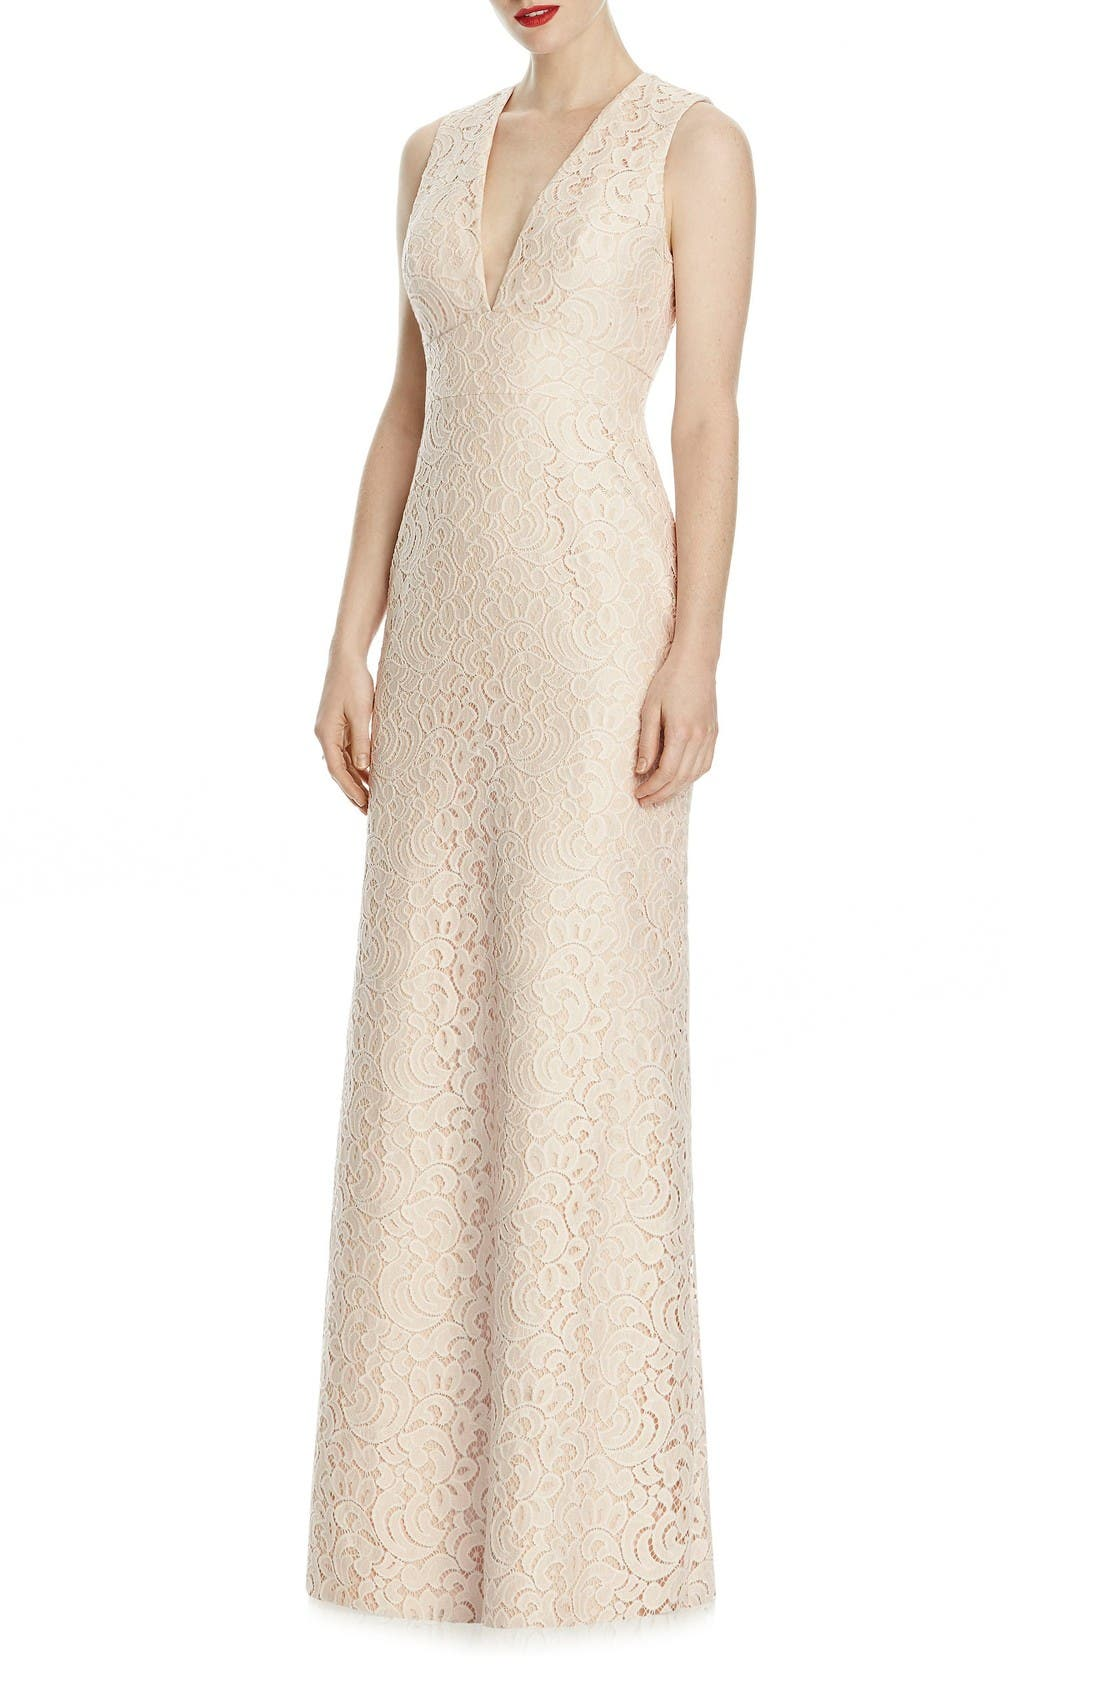 Alternate Image 1 Selected - Lela Rose Bridesmaid V-Neck Lace A-Line Gown